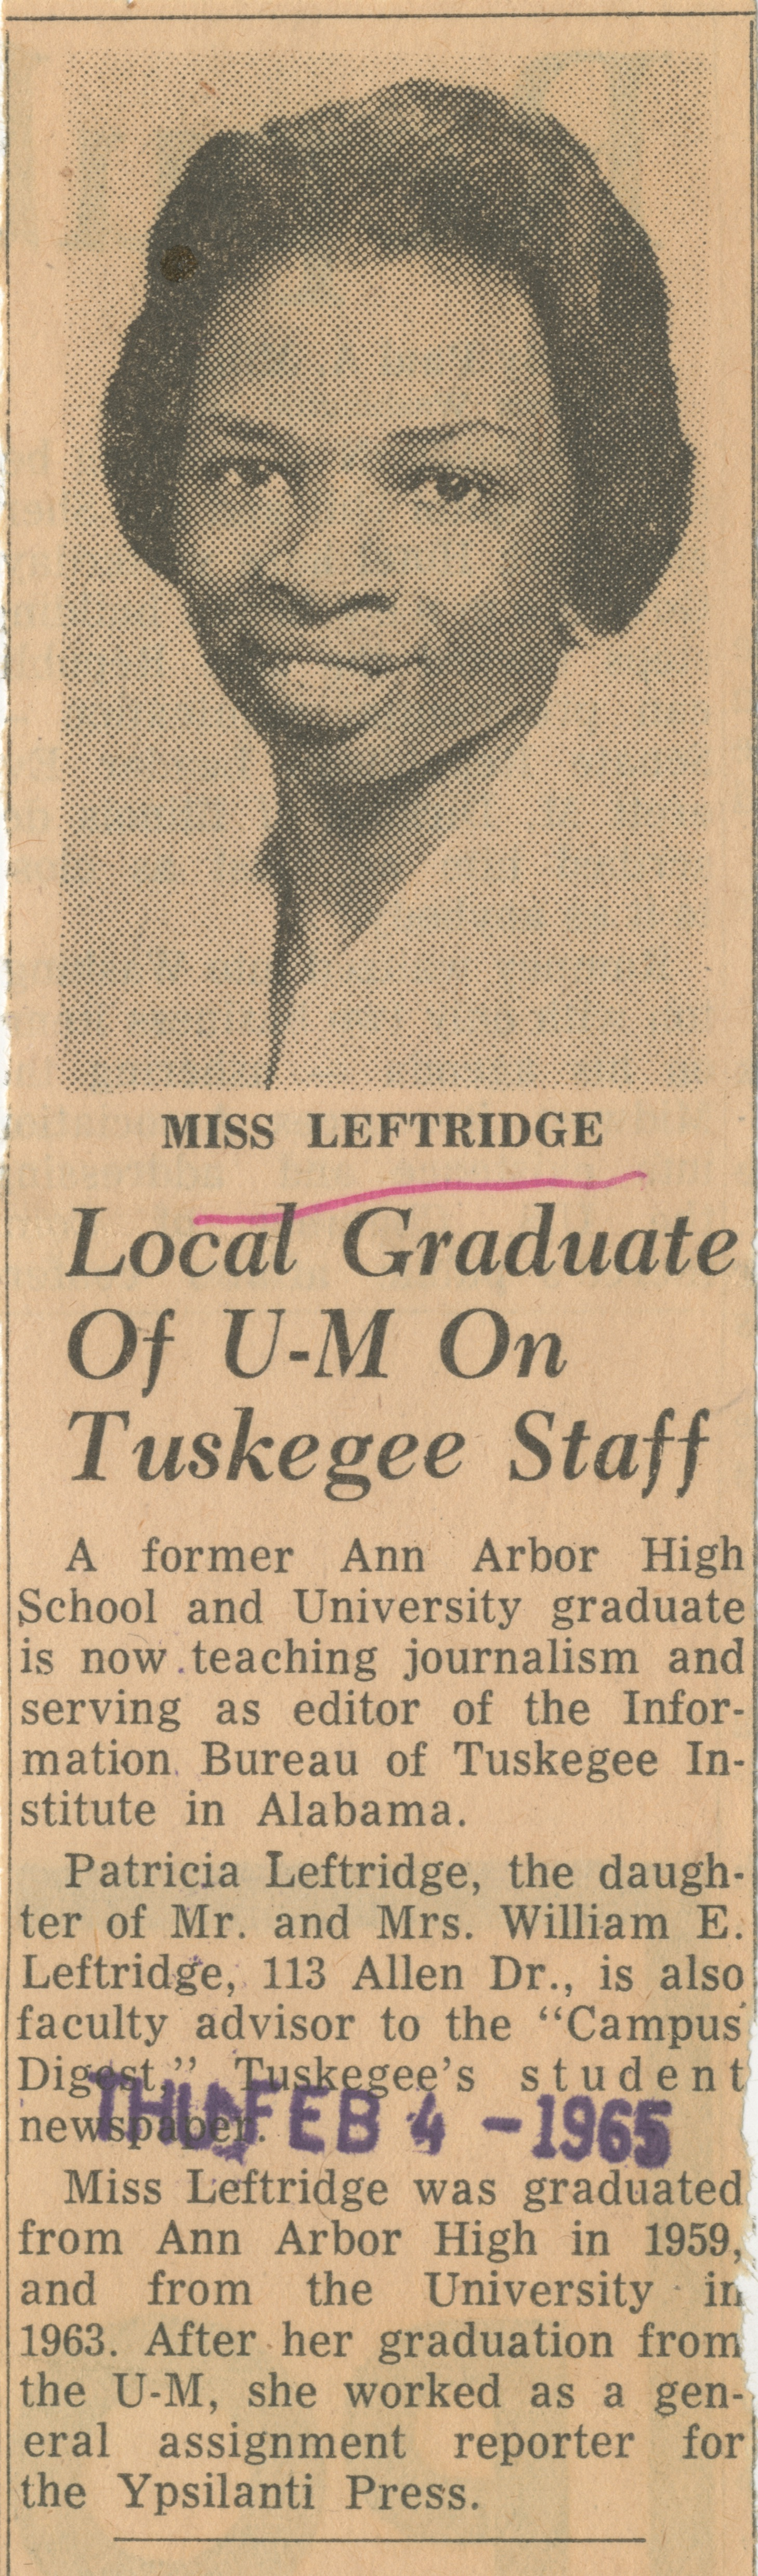 Local Graduate Of U-M On Tuskegee Staff image